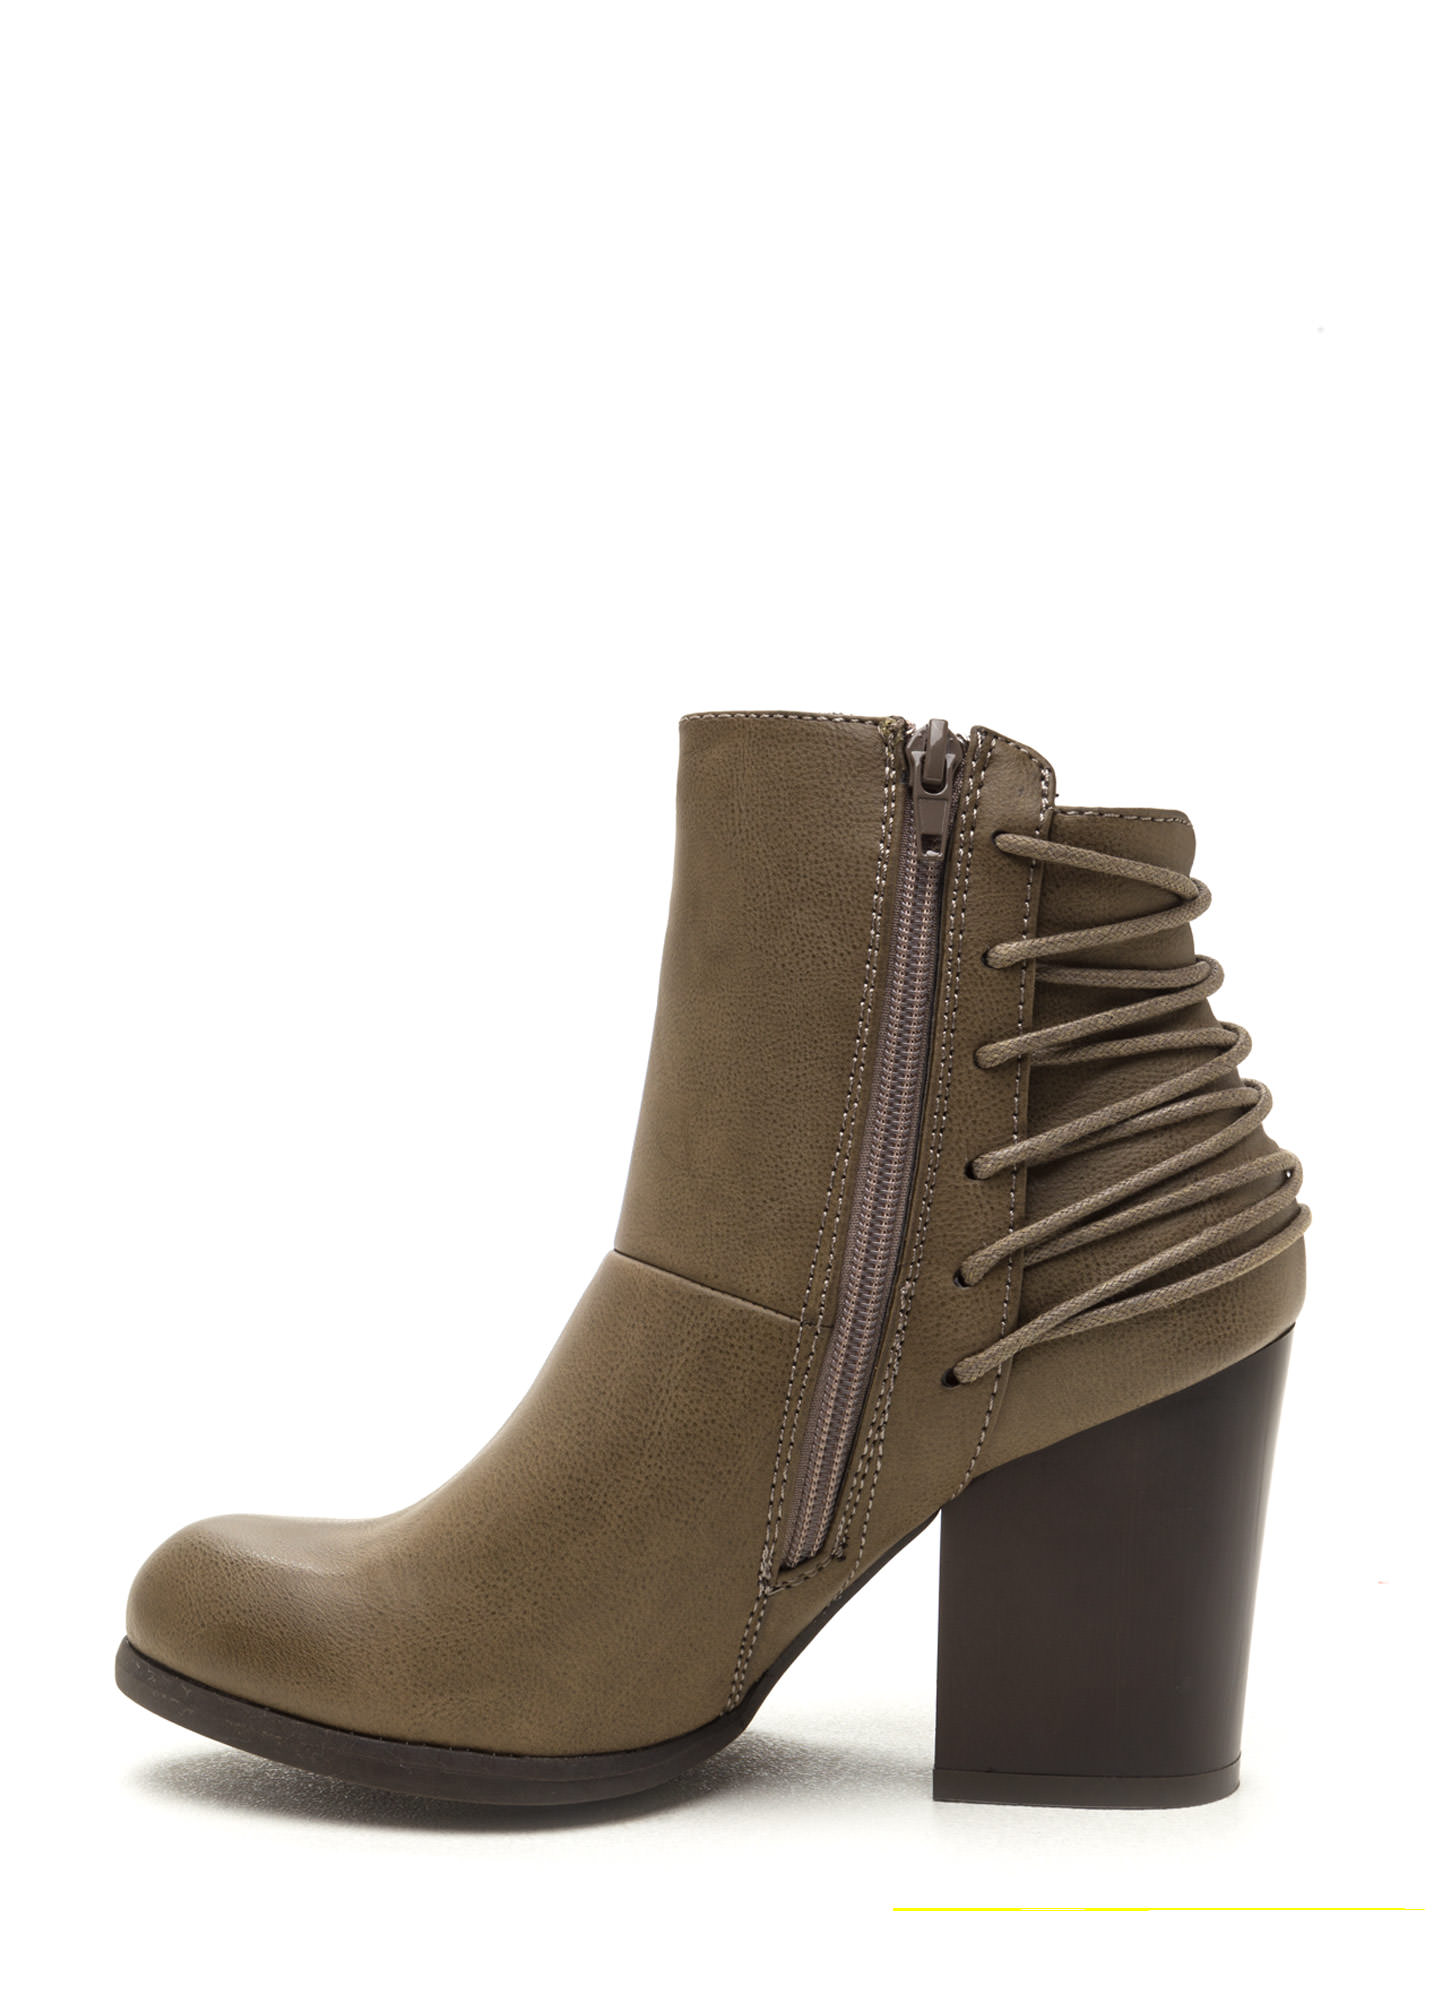 Say Hello Laced Back Block Booties TAUPE